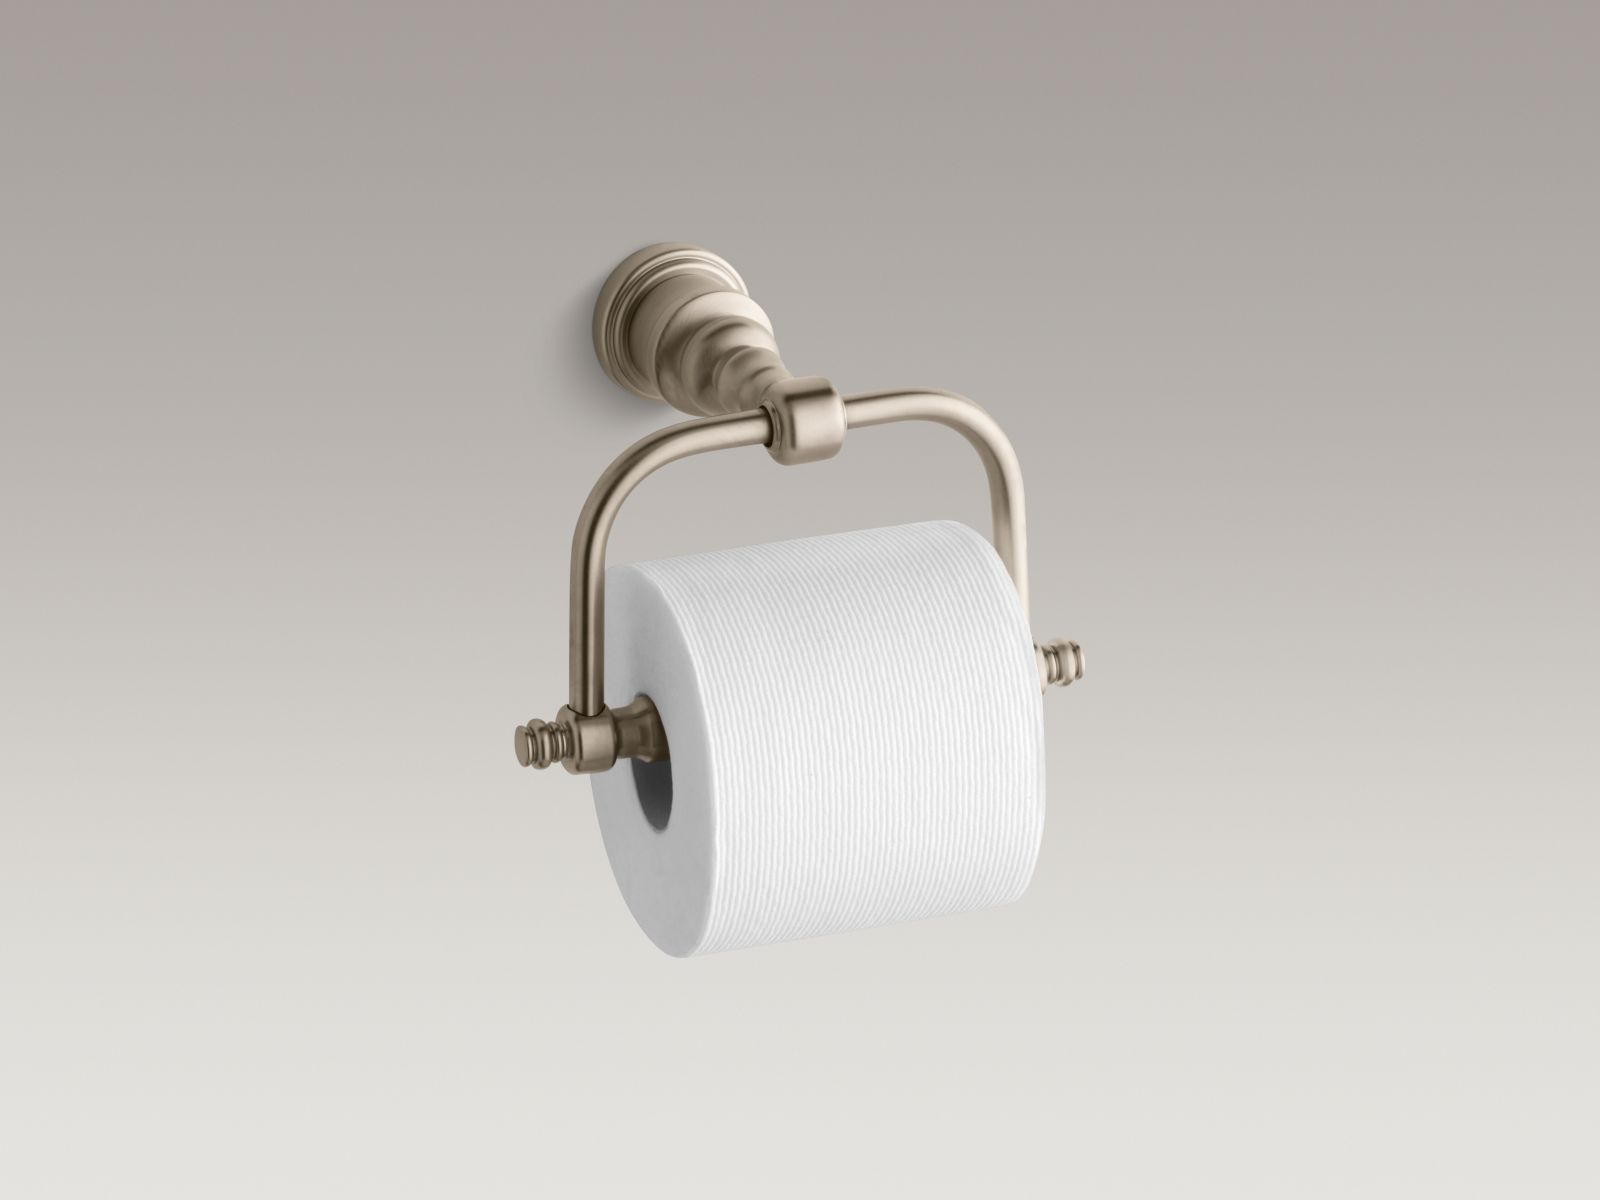 Kohler K-6828-BV IV Georges Brass Horizontal Toilet Tissue Holder Vibrant Brushed Bronze